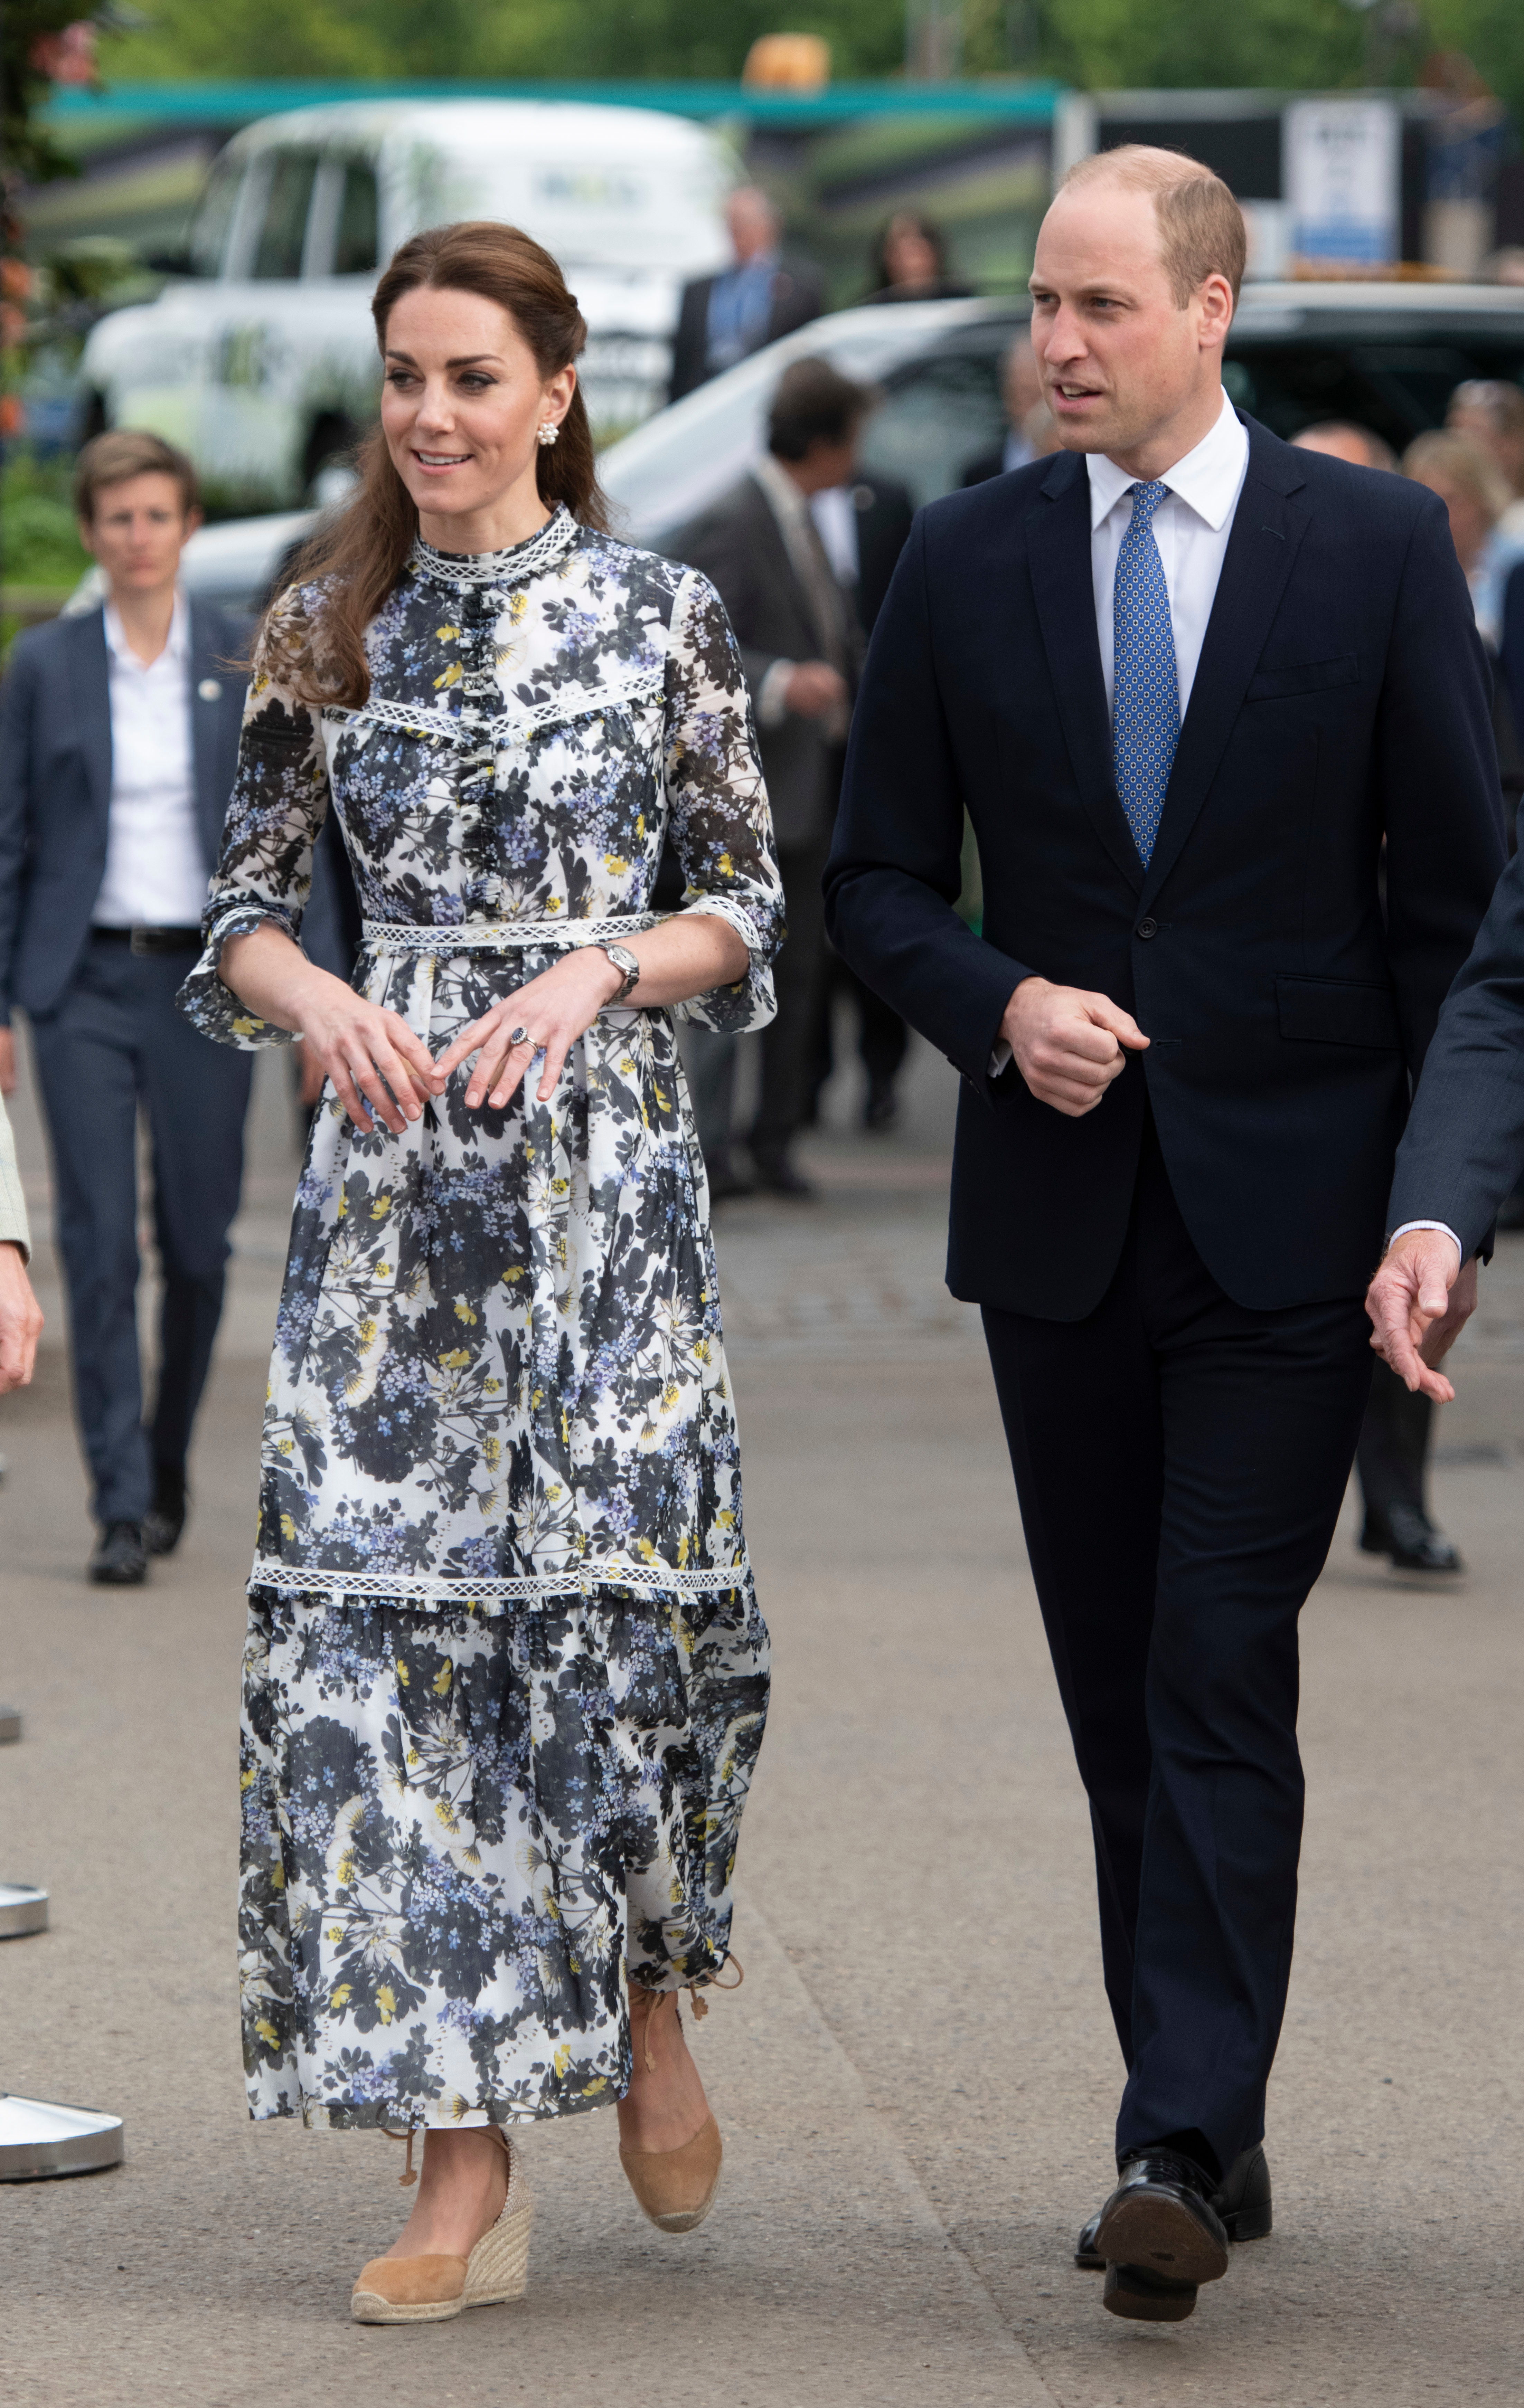 Duchess Kate and Prince William arrive for the RHS Chelsea Flower Show press day in London on May 20, 2019.